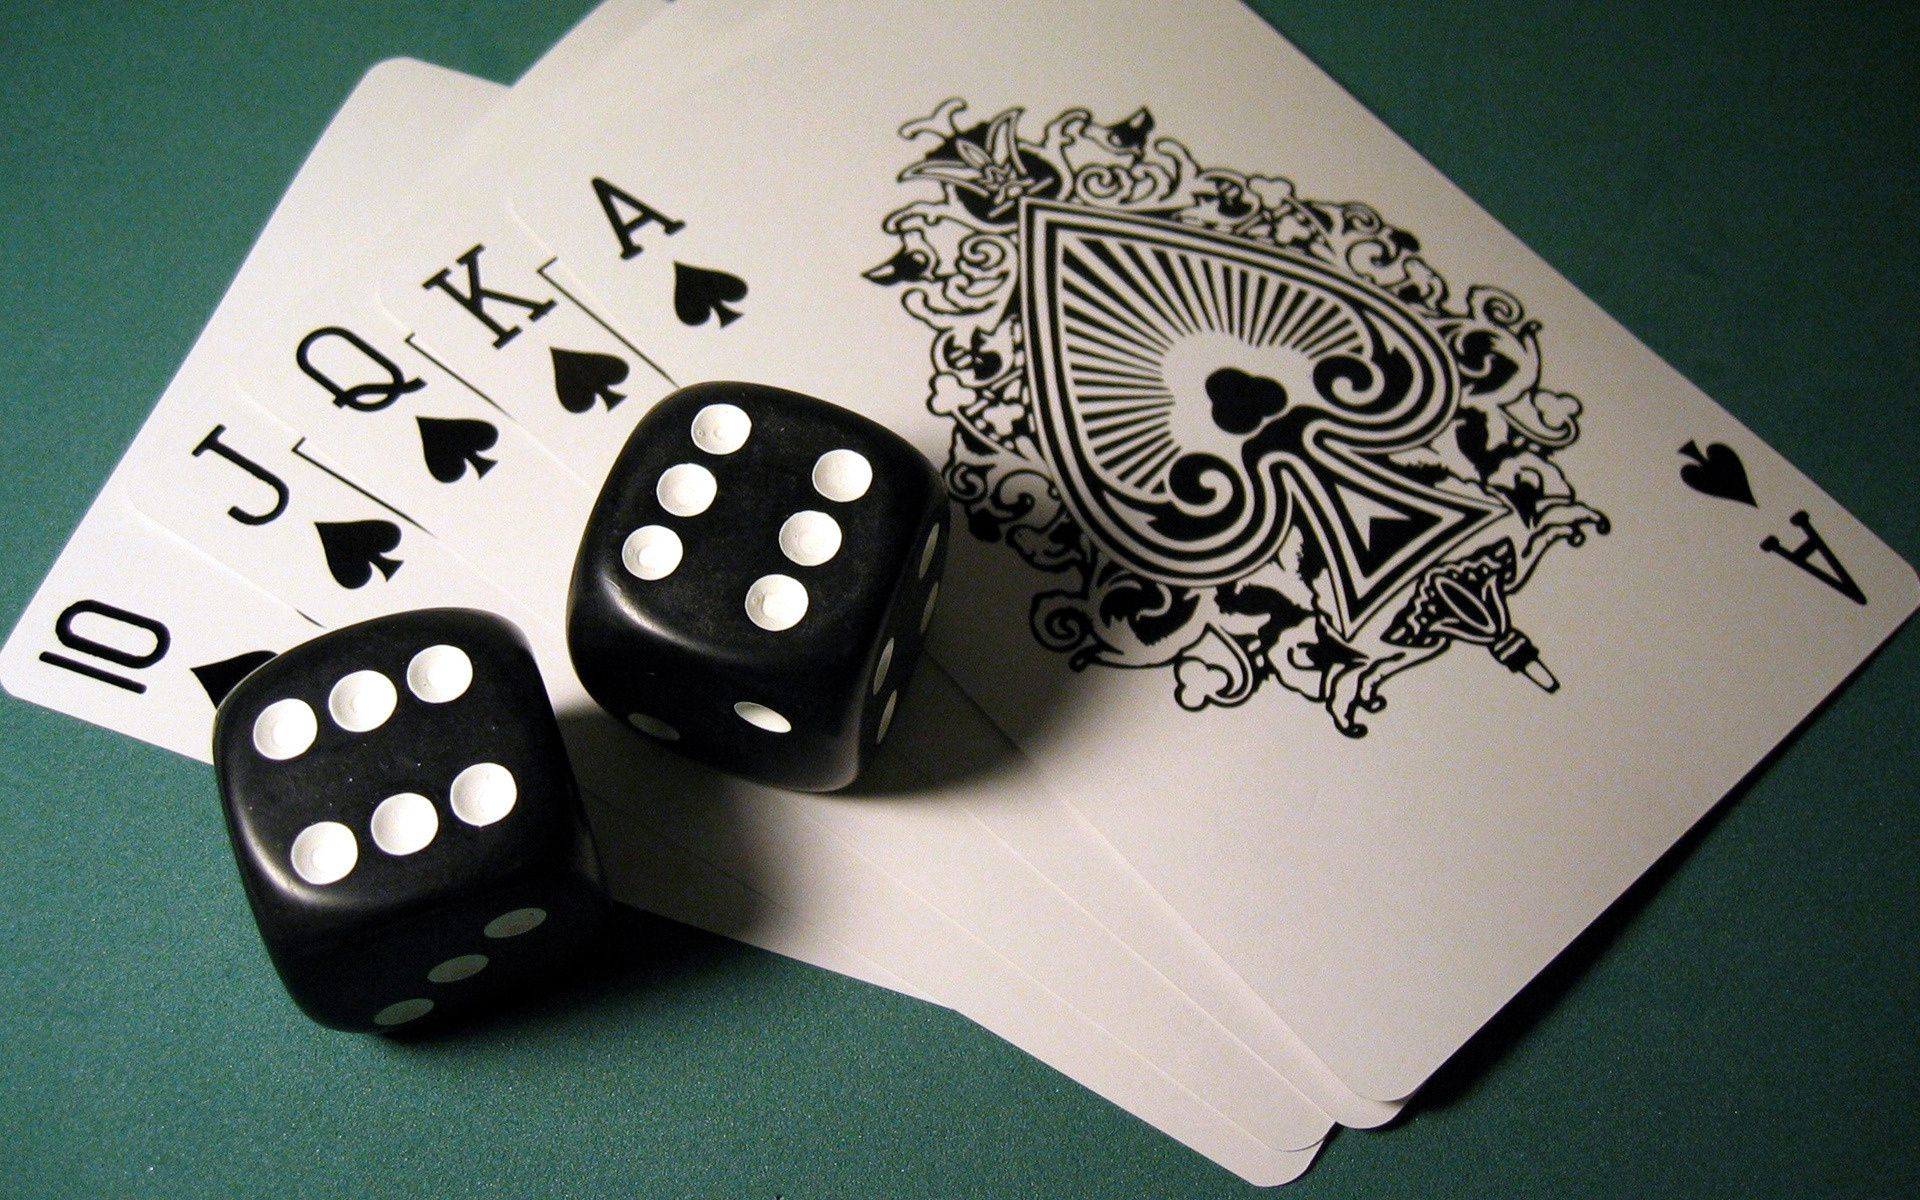 Online Gambling - Pay Attention To These 10 Indicators